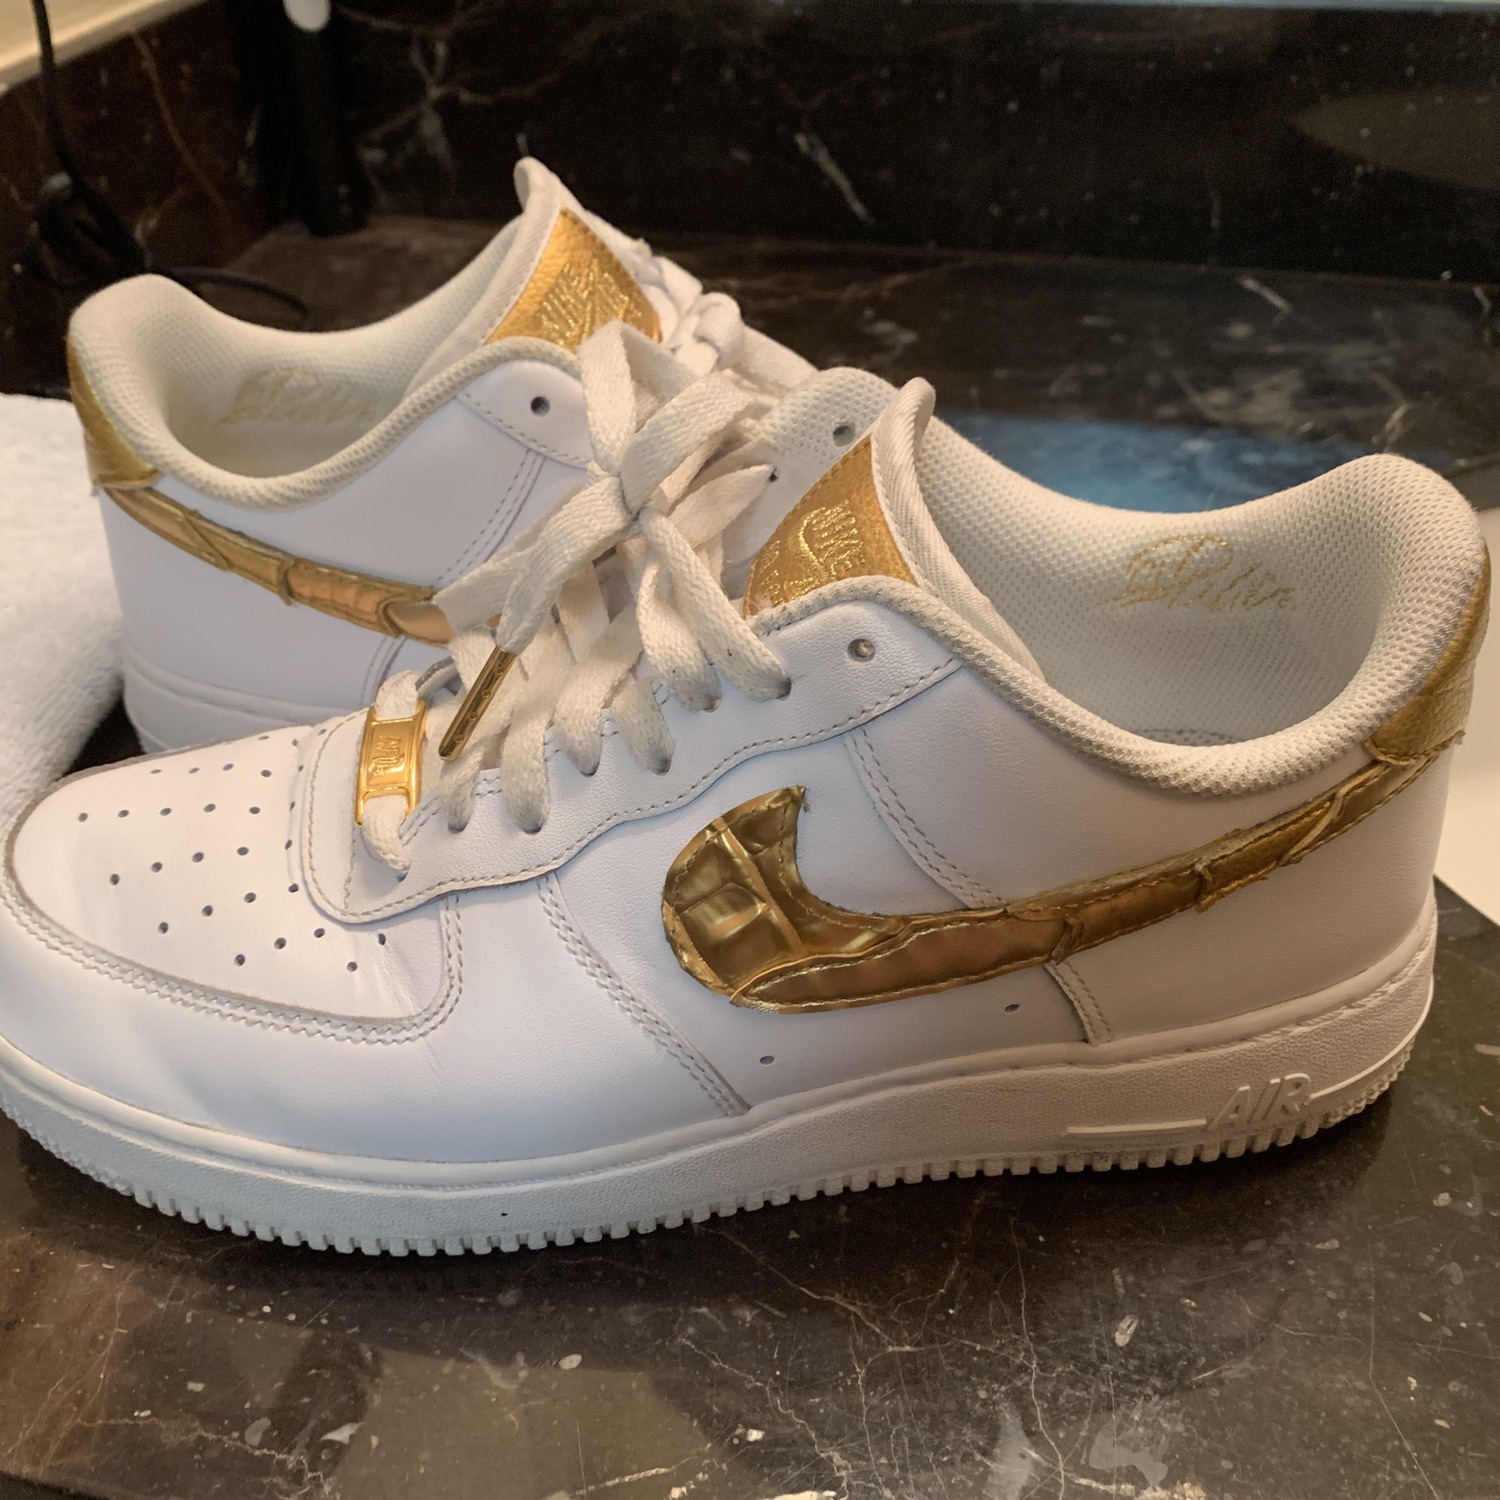 Muelle del puente Bien educado Elevado  Nike Air Force 1 Cr7 Golden Patchwork